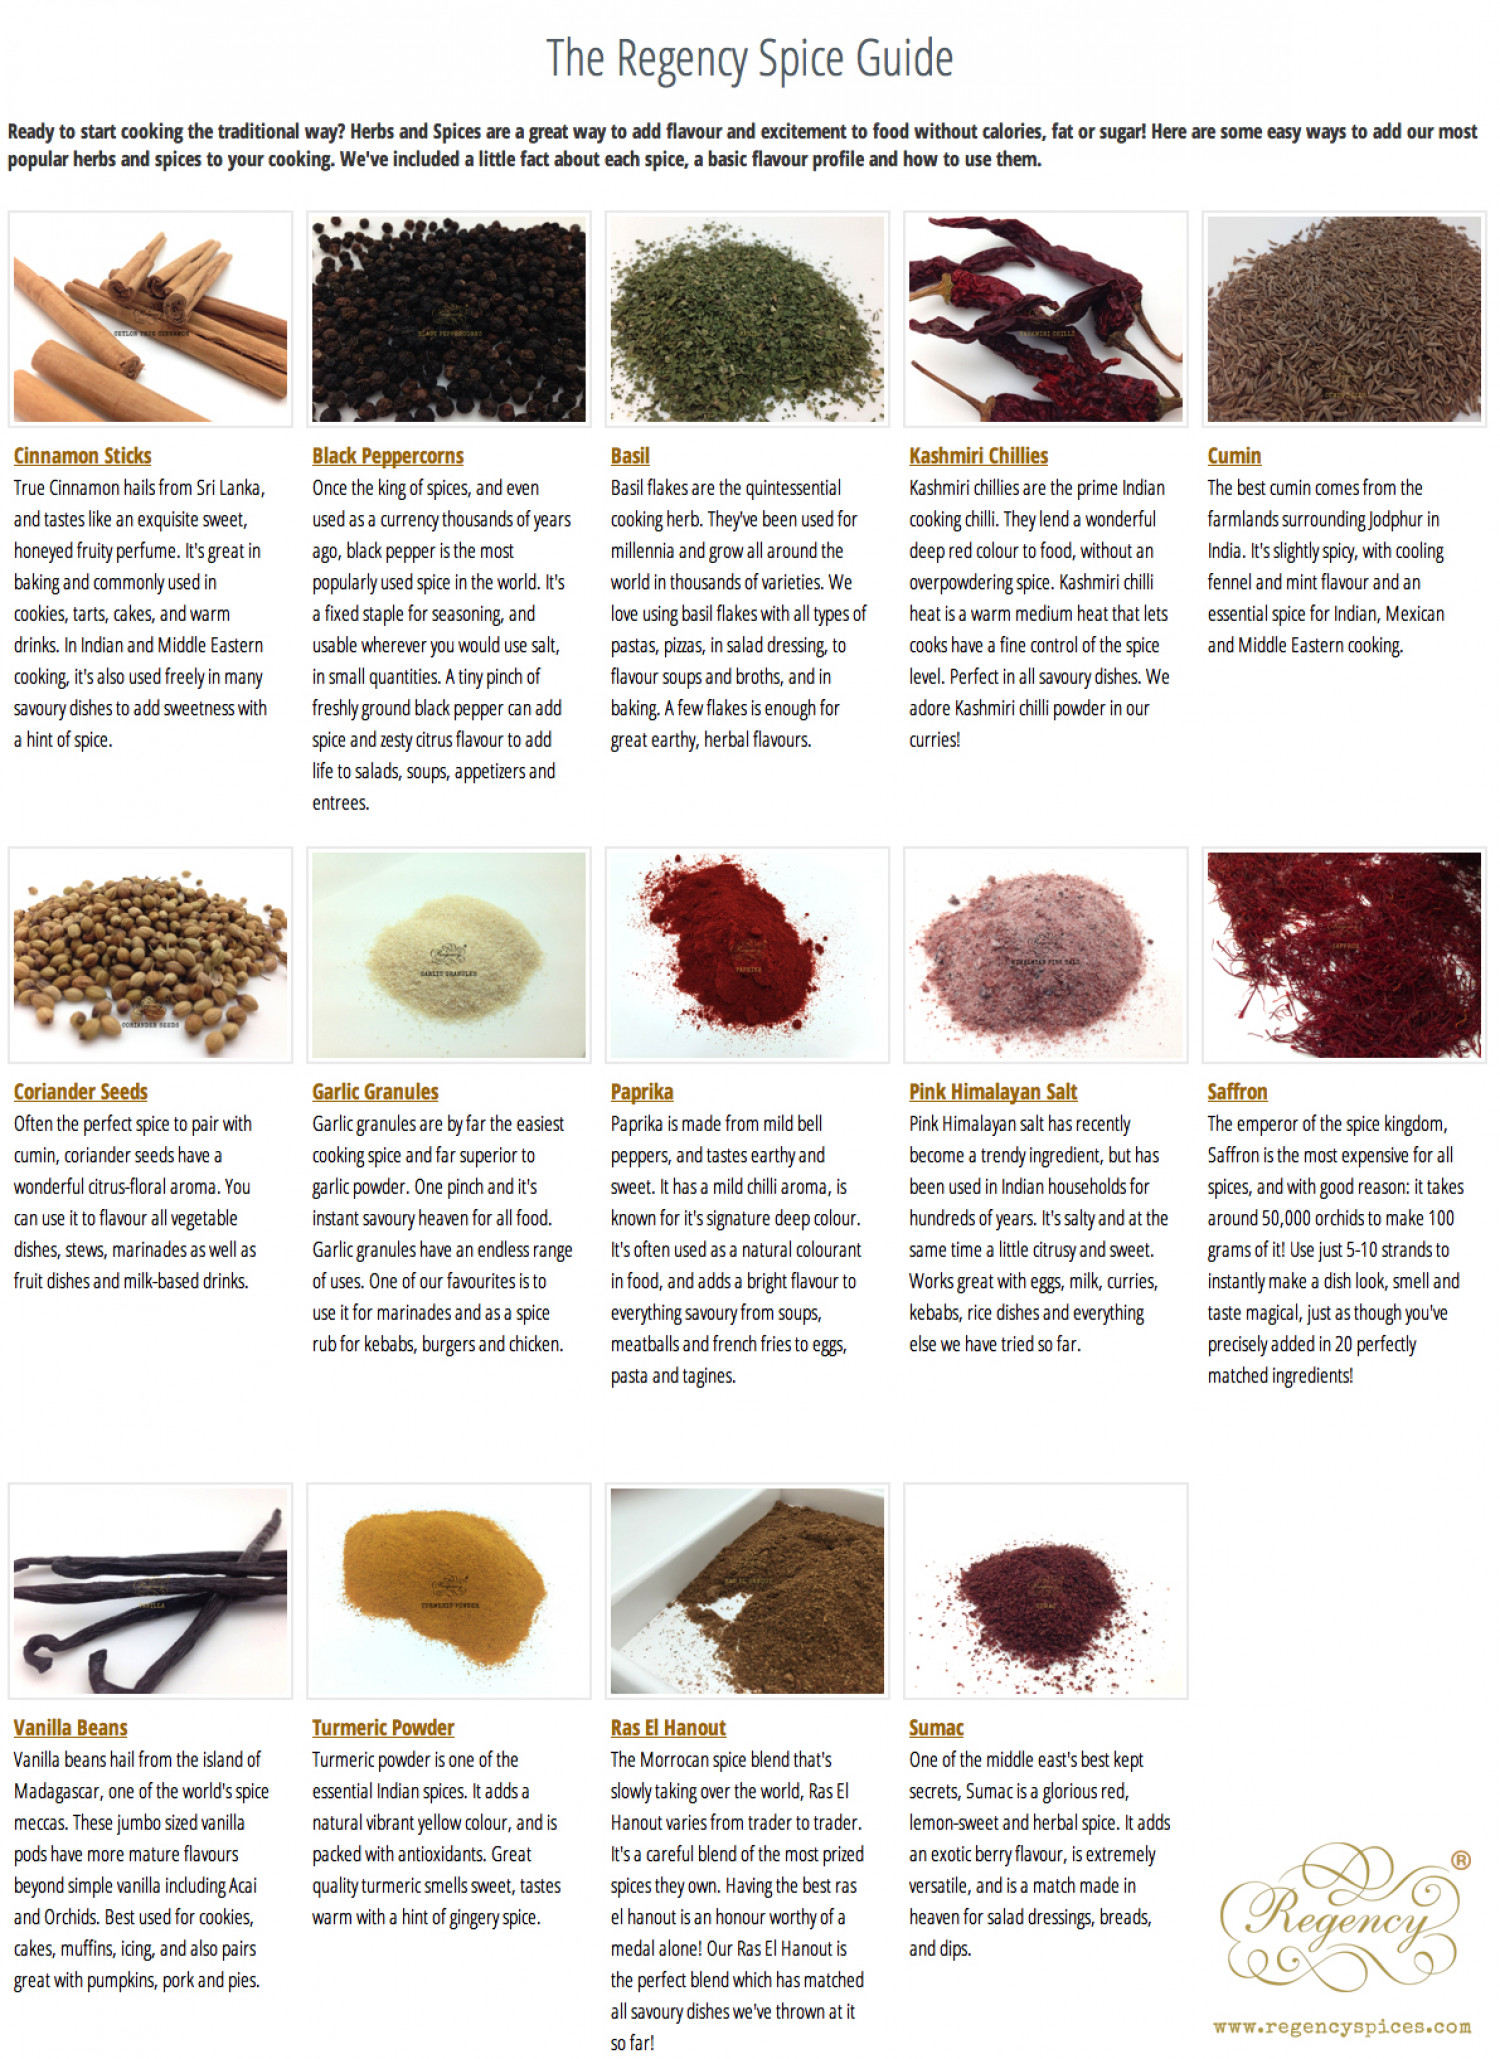 The Regency Spice Guide Infographic